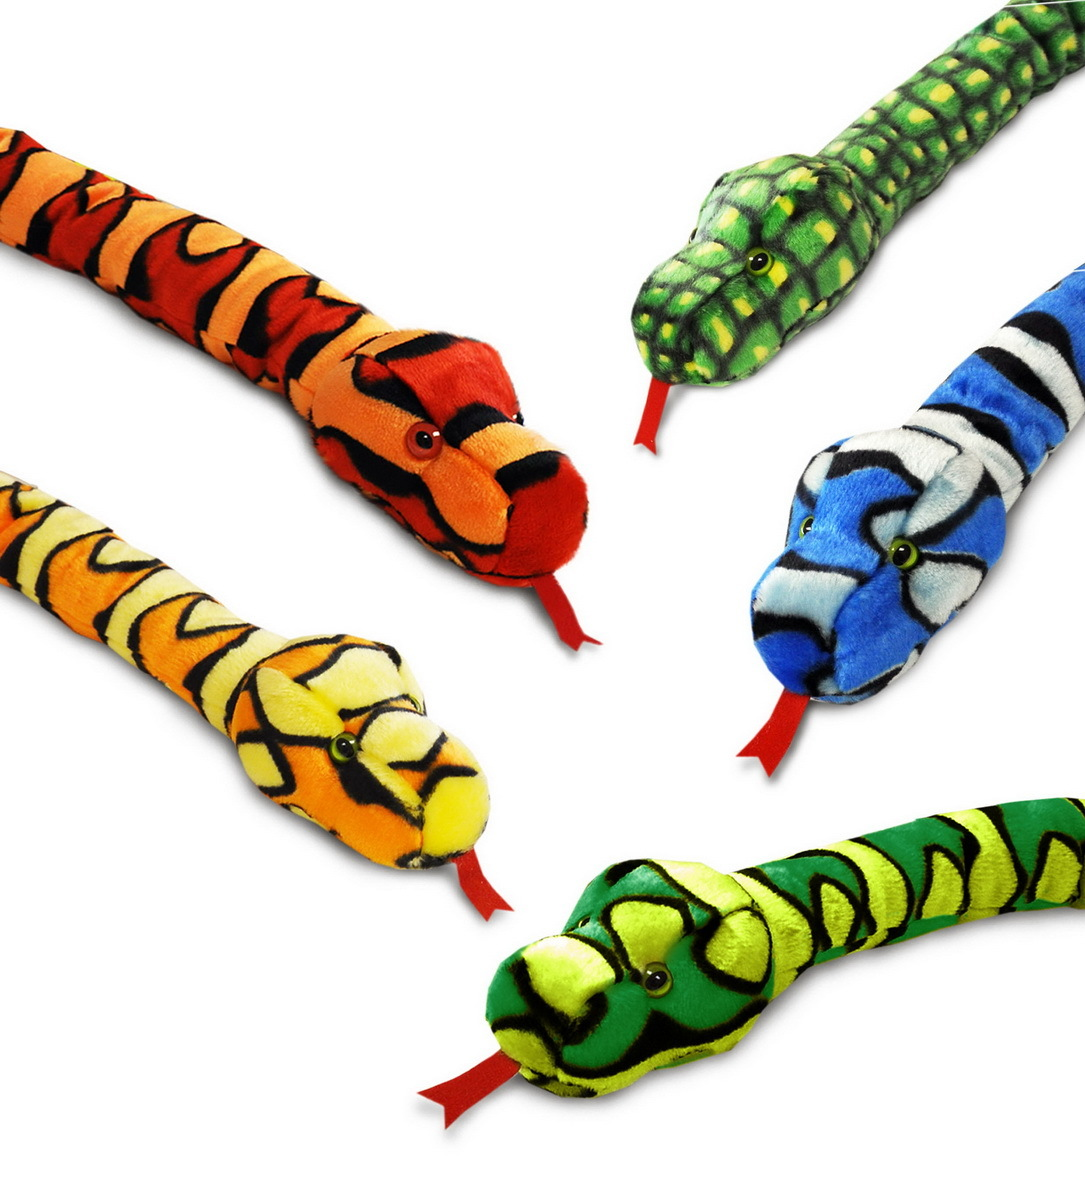 Keel Toys: Colourful Snake Plush - Assorted Designs image